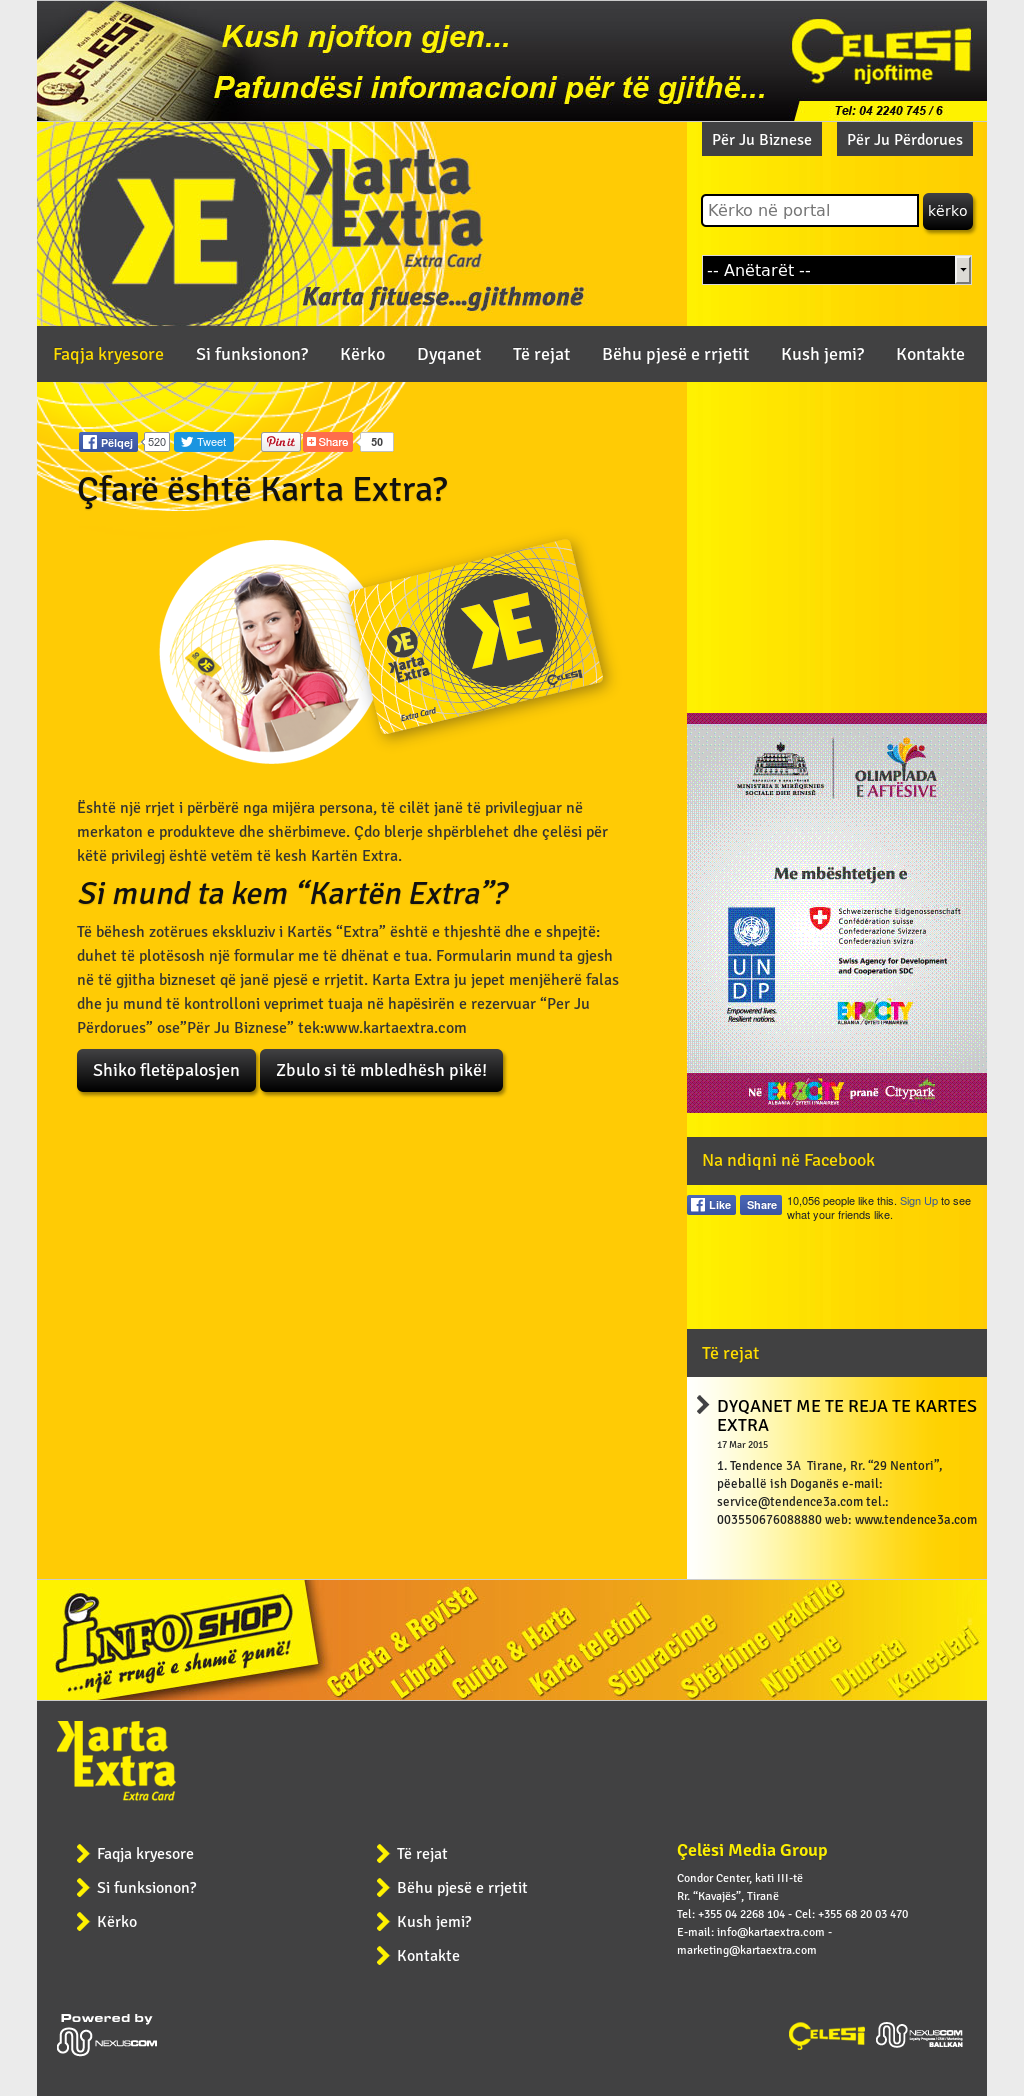 Karta Extra Competitors, Revenue and Employees - Owler Company Profile